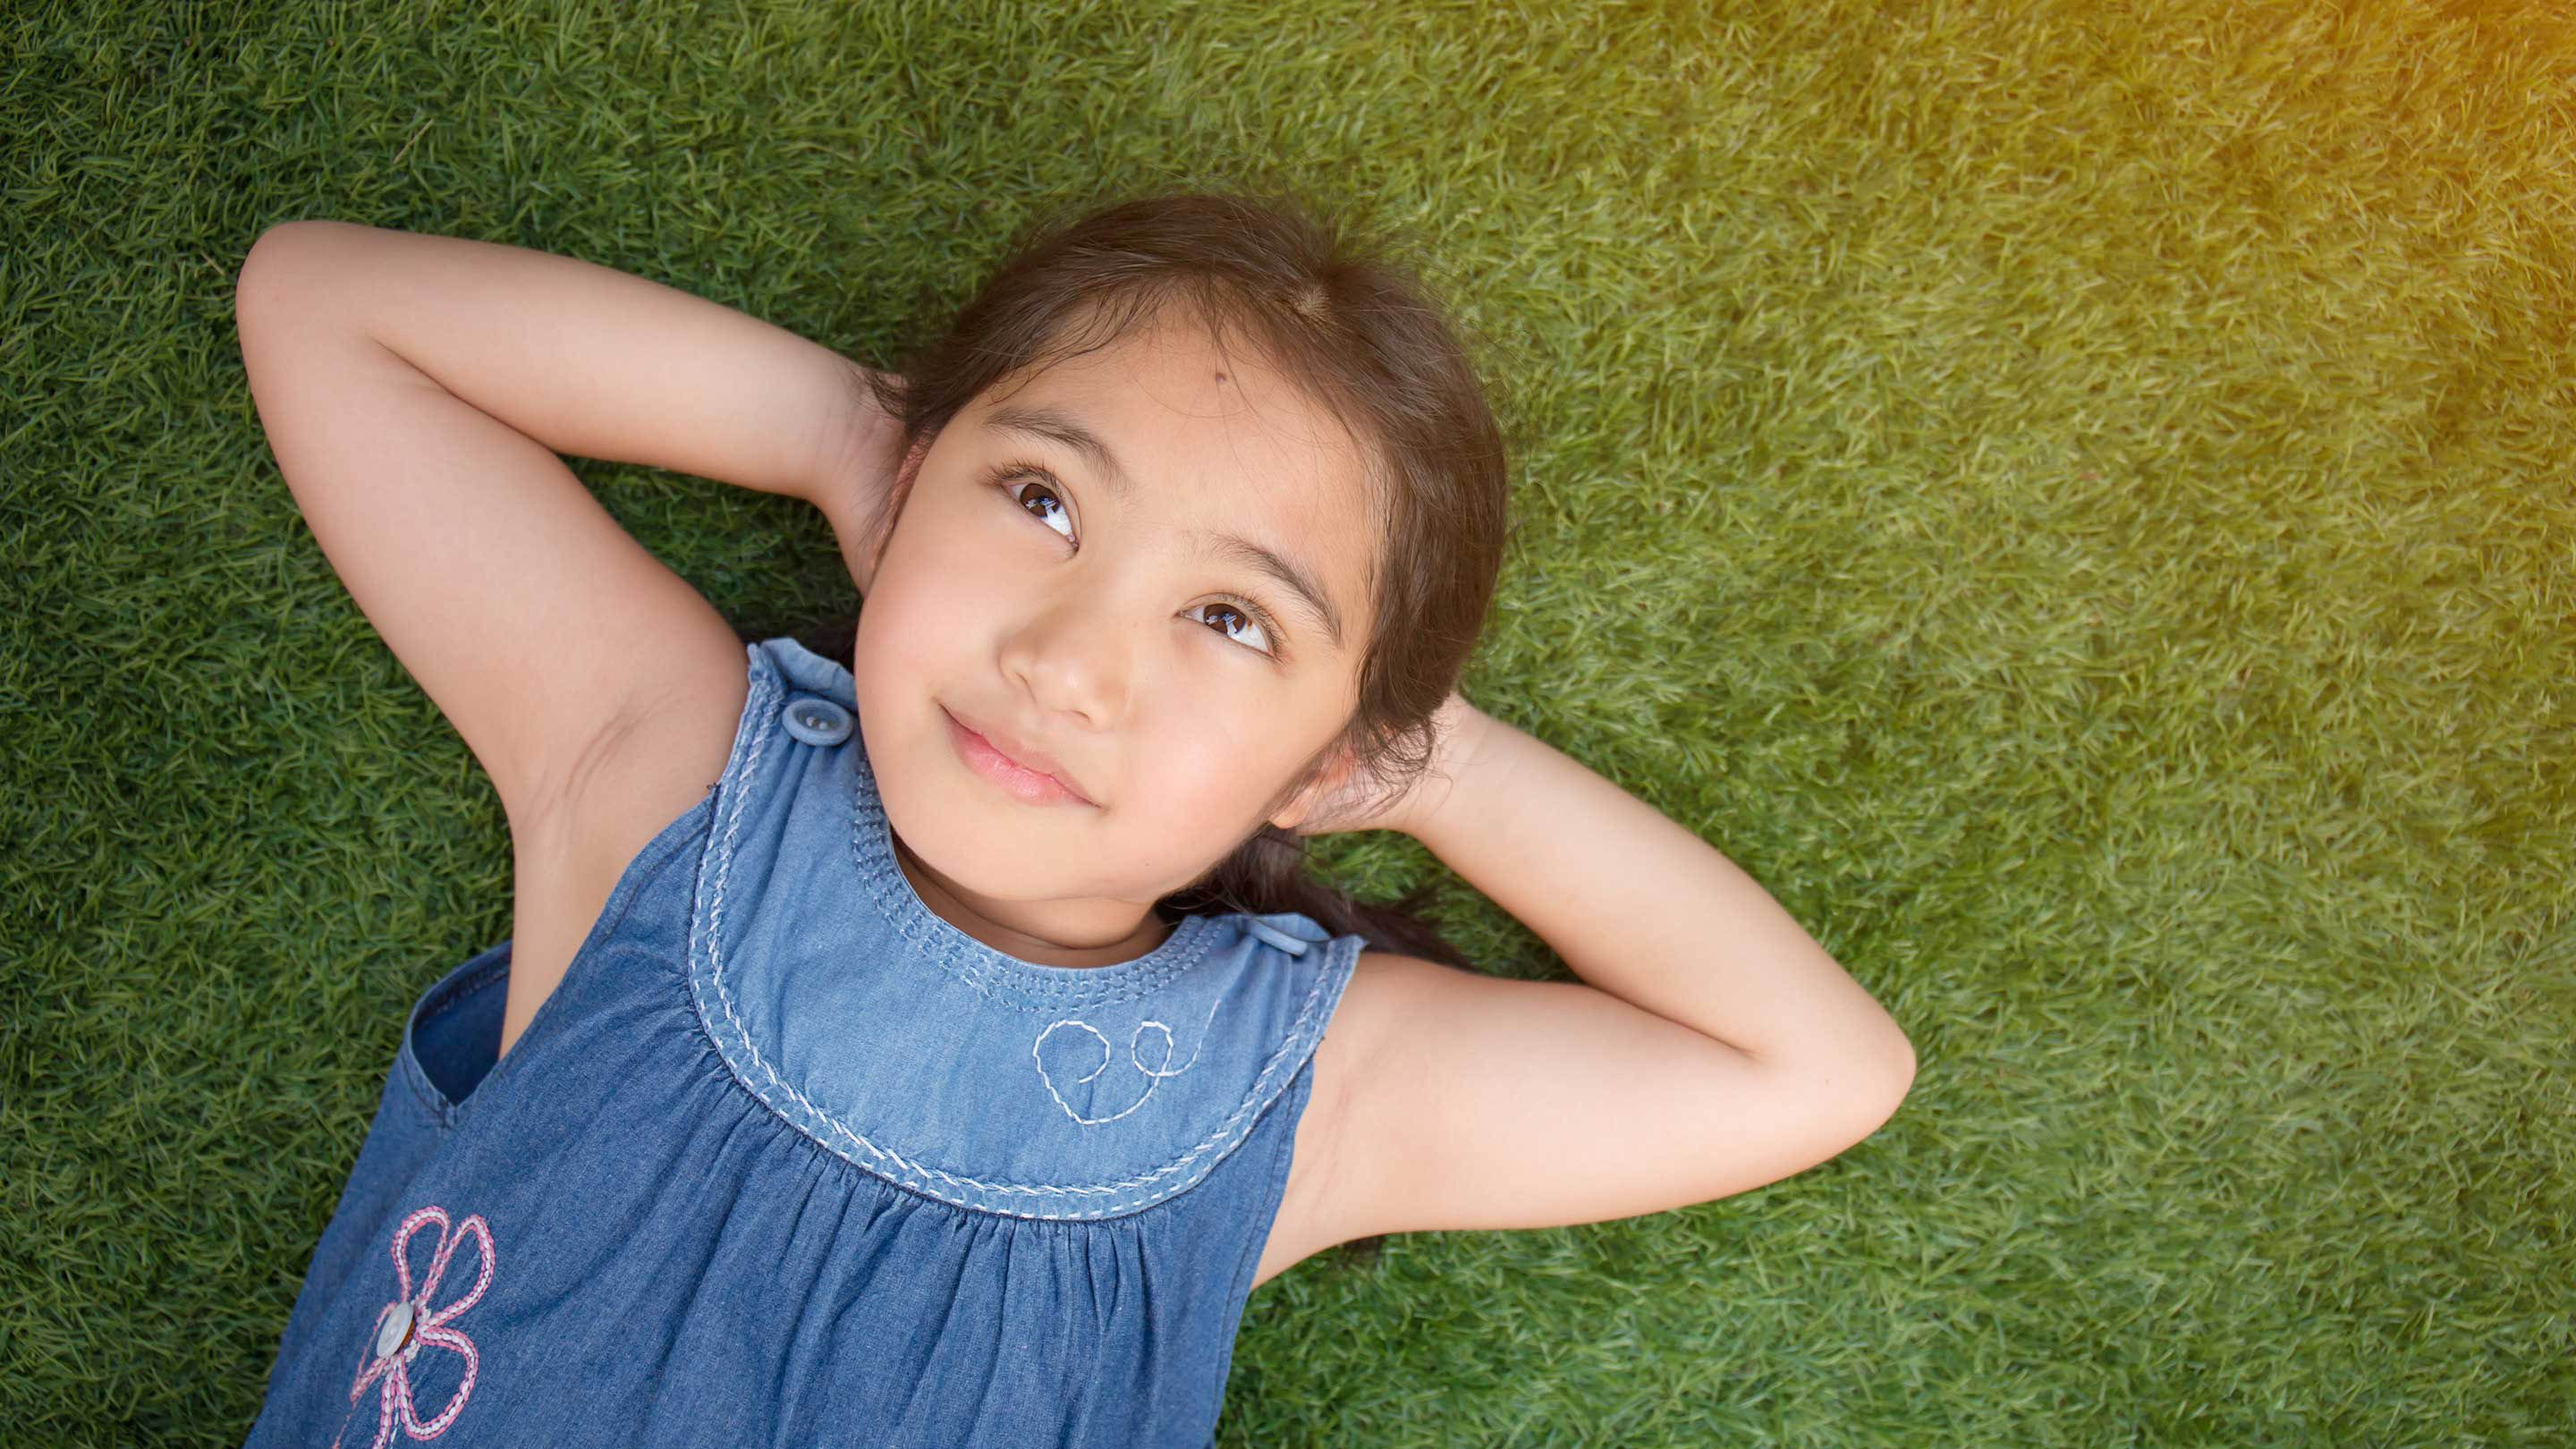 A young girl lies on her back, relaxing on the grass.